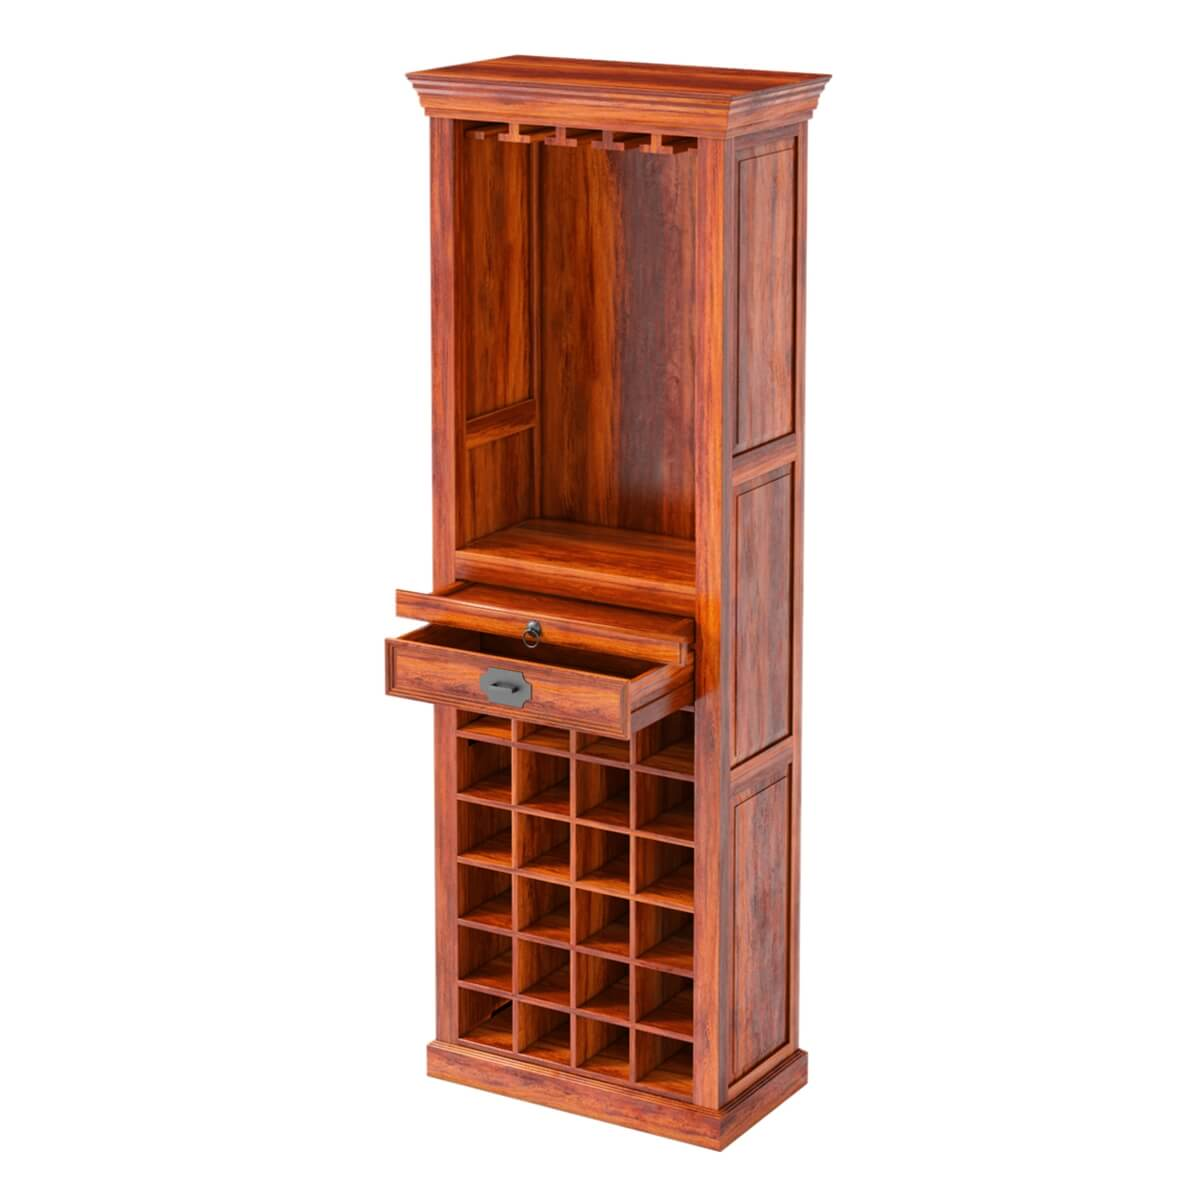 Wood Wine Storage Lovedale Rustic Mango Wood Tower Bar Cabinet With Wine Storage